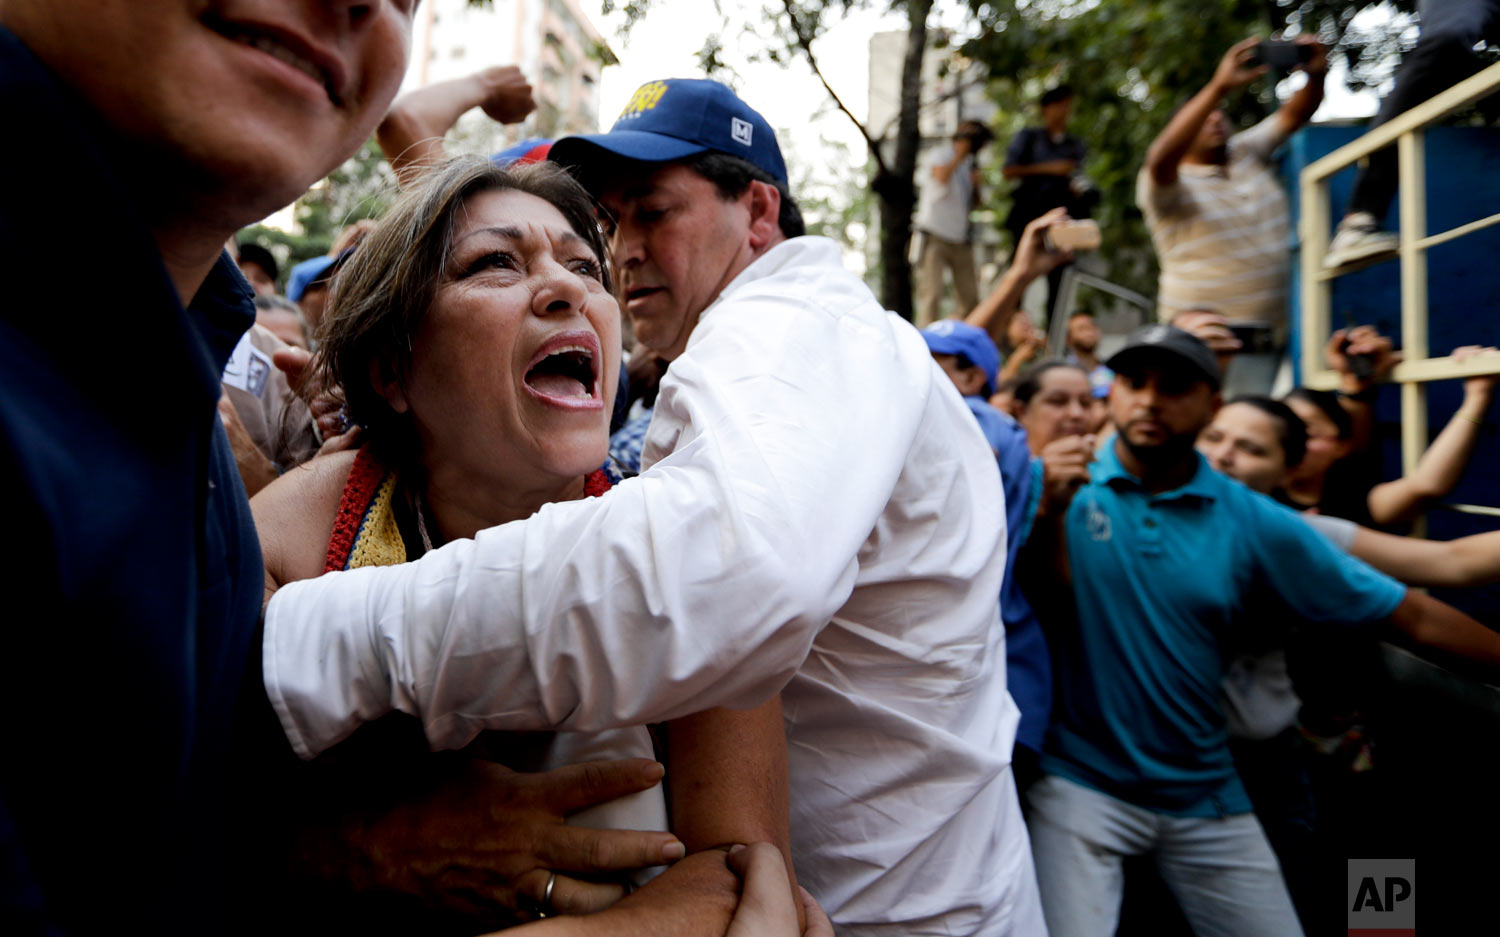 In this March 28, 2019 photo, a supporter of Venezuela's self-proclaimed interim president Juan Guaido is stopped as she tries to get near him during a rally in Caracas, Venezuela. (AP Photo/Natacha Pisarenko)